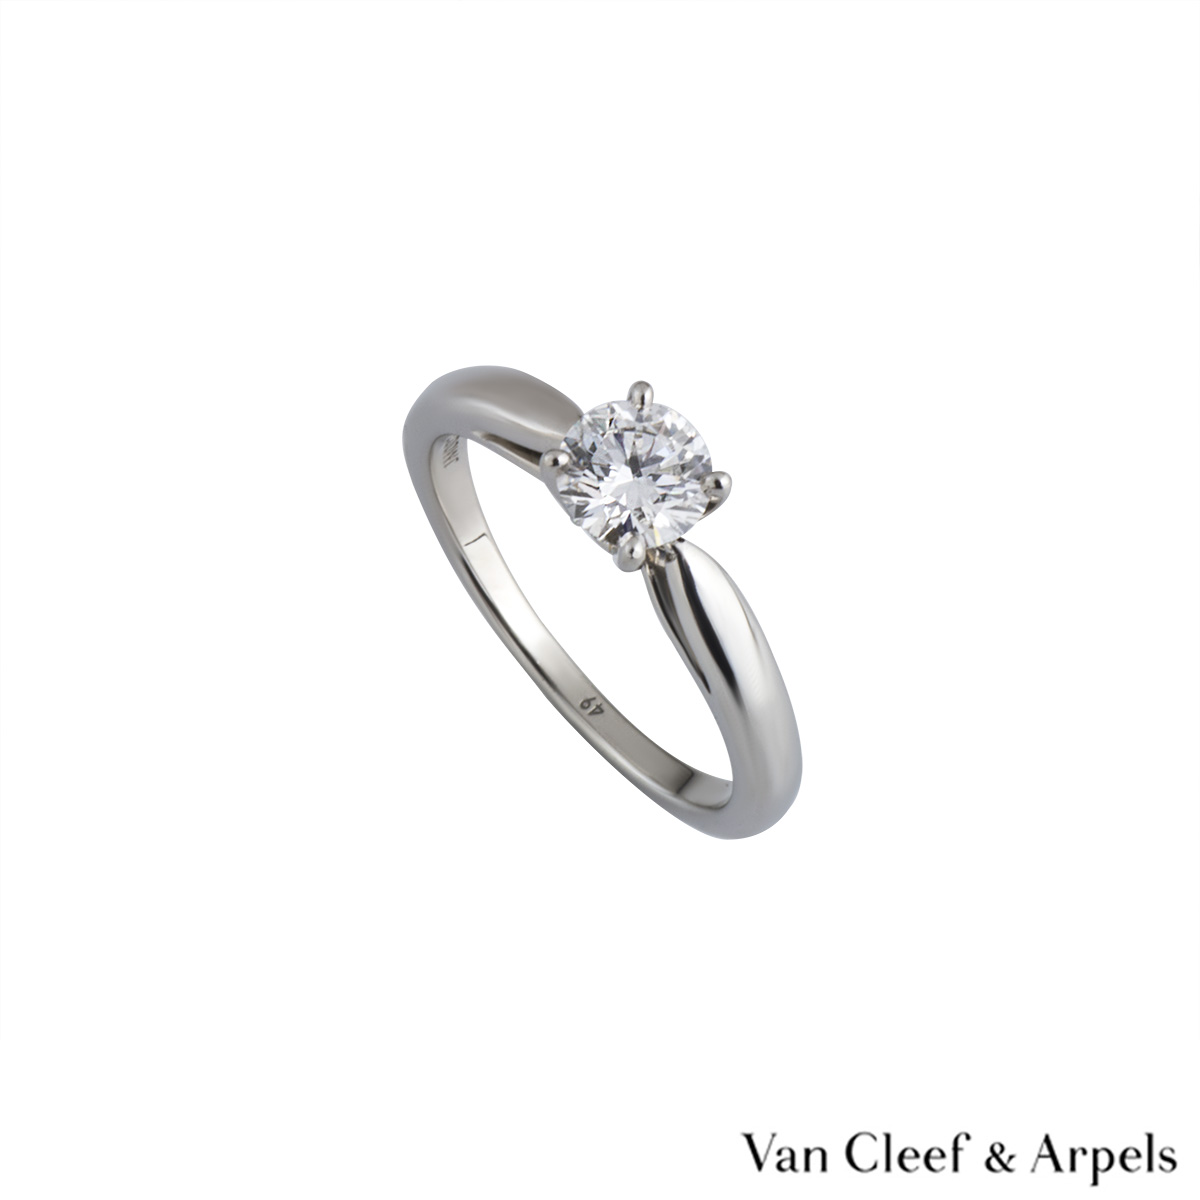 Van Cleef & Arpels XXX Diamond Ring in Platinum 0.50ct D/VVS2